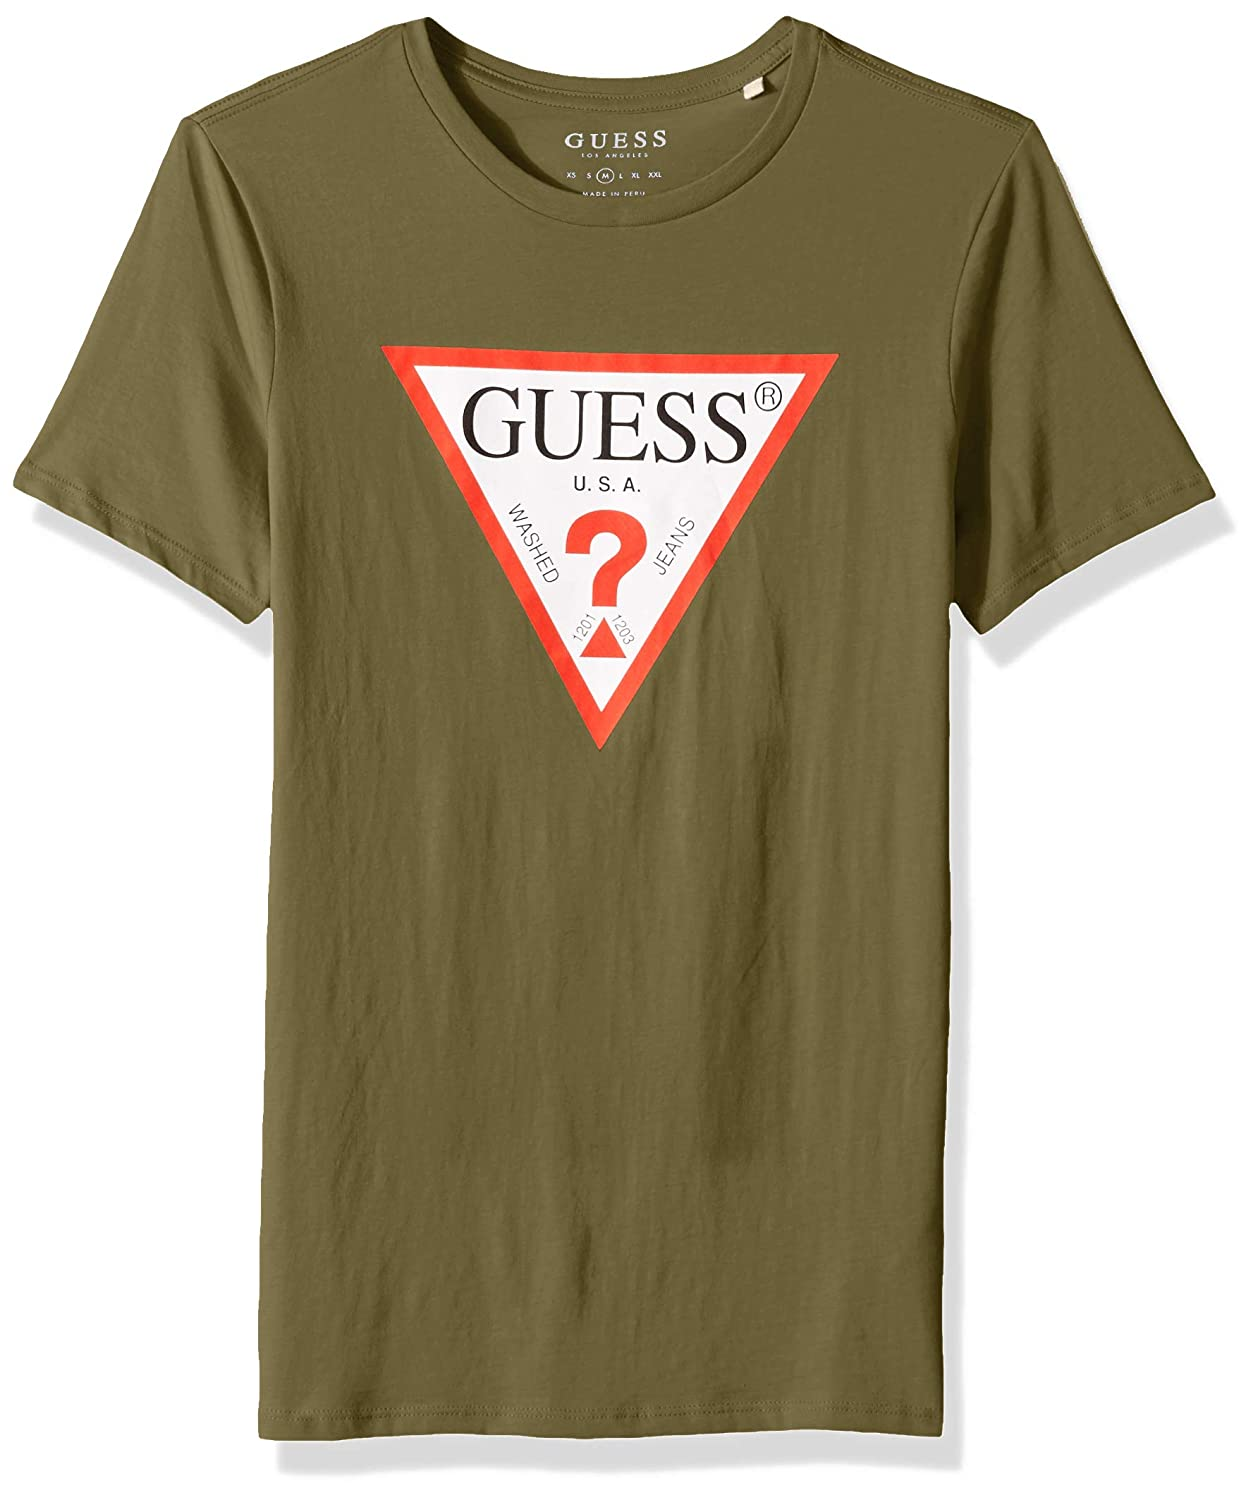 5c42ed5549b0 GUESS Mens Short Sleeve Triangle Logo T-Shirt T-Shirt: Amazon.ca: Clothing  & Accessories